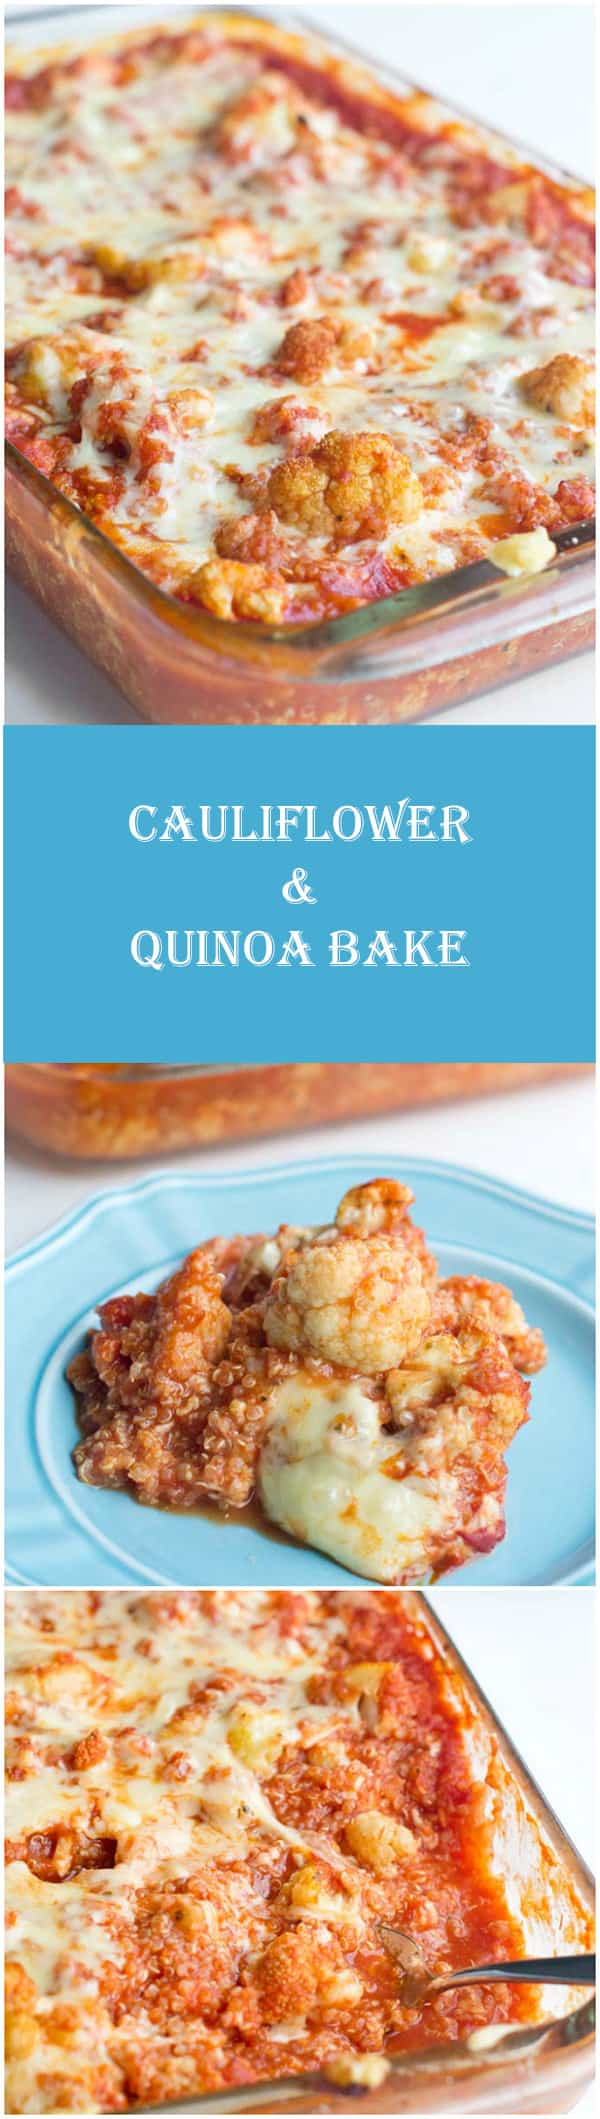 Italian Cauliflower and Quinoa Bake